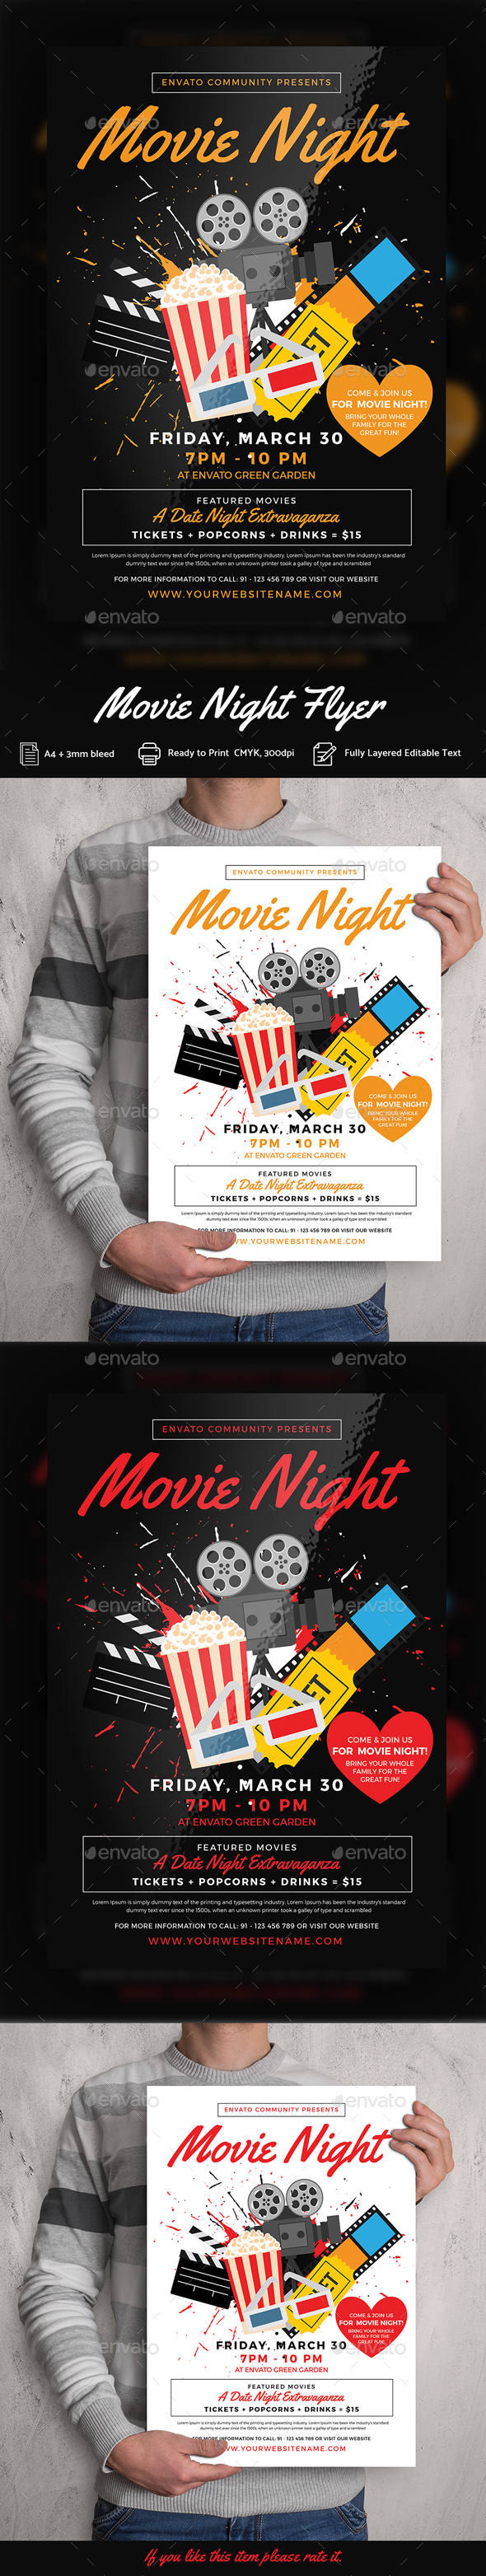 Movie night flyer templates movie night flyer templates print templates maxwellsz